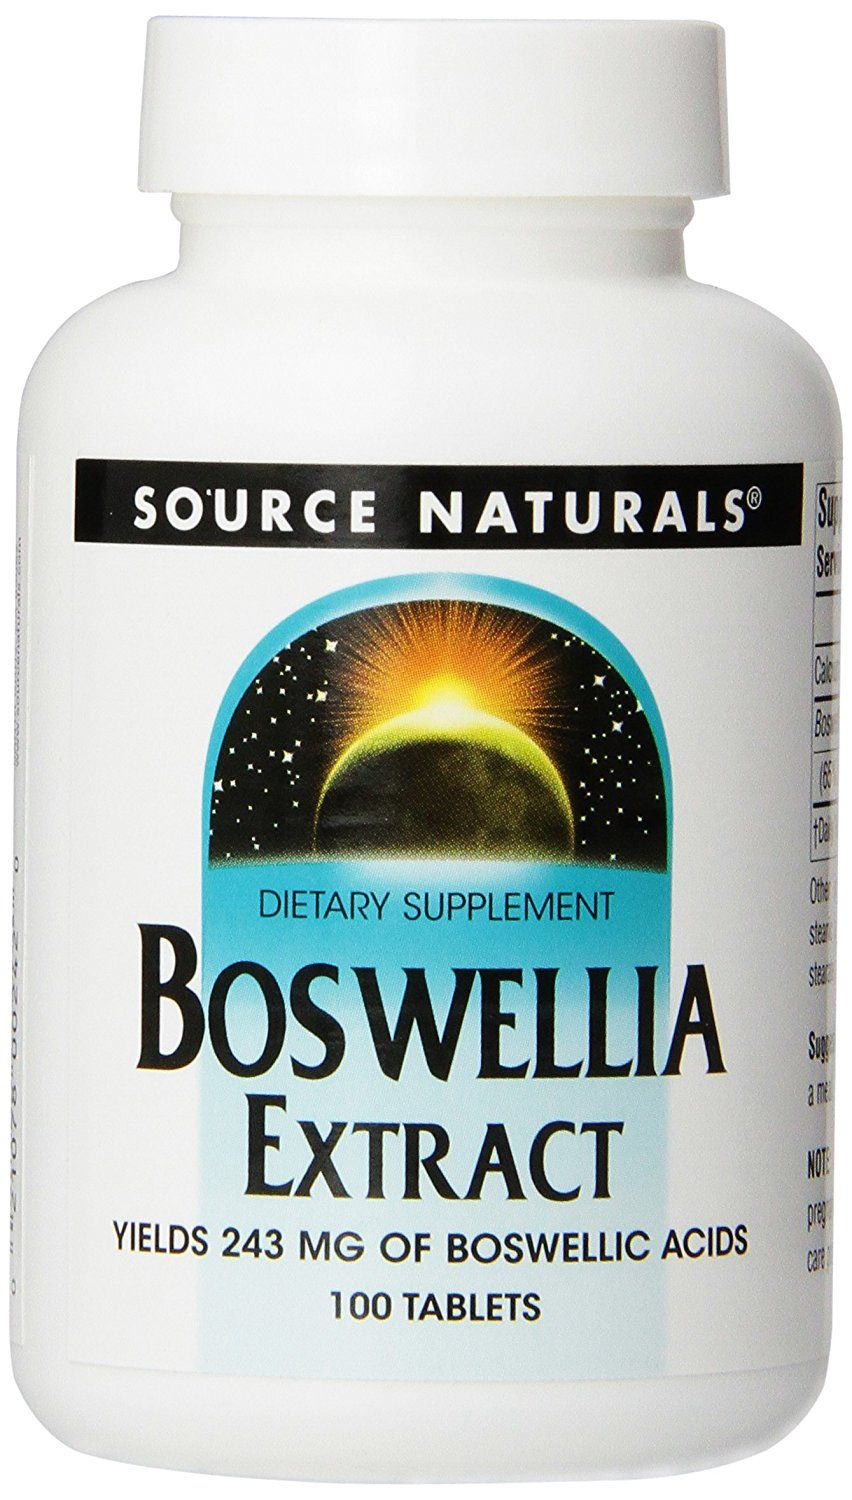 Source Naturals Boswellia Extract, Boswellic Acids 243 mg, 100